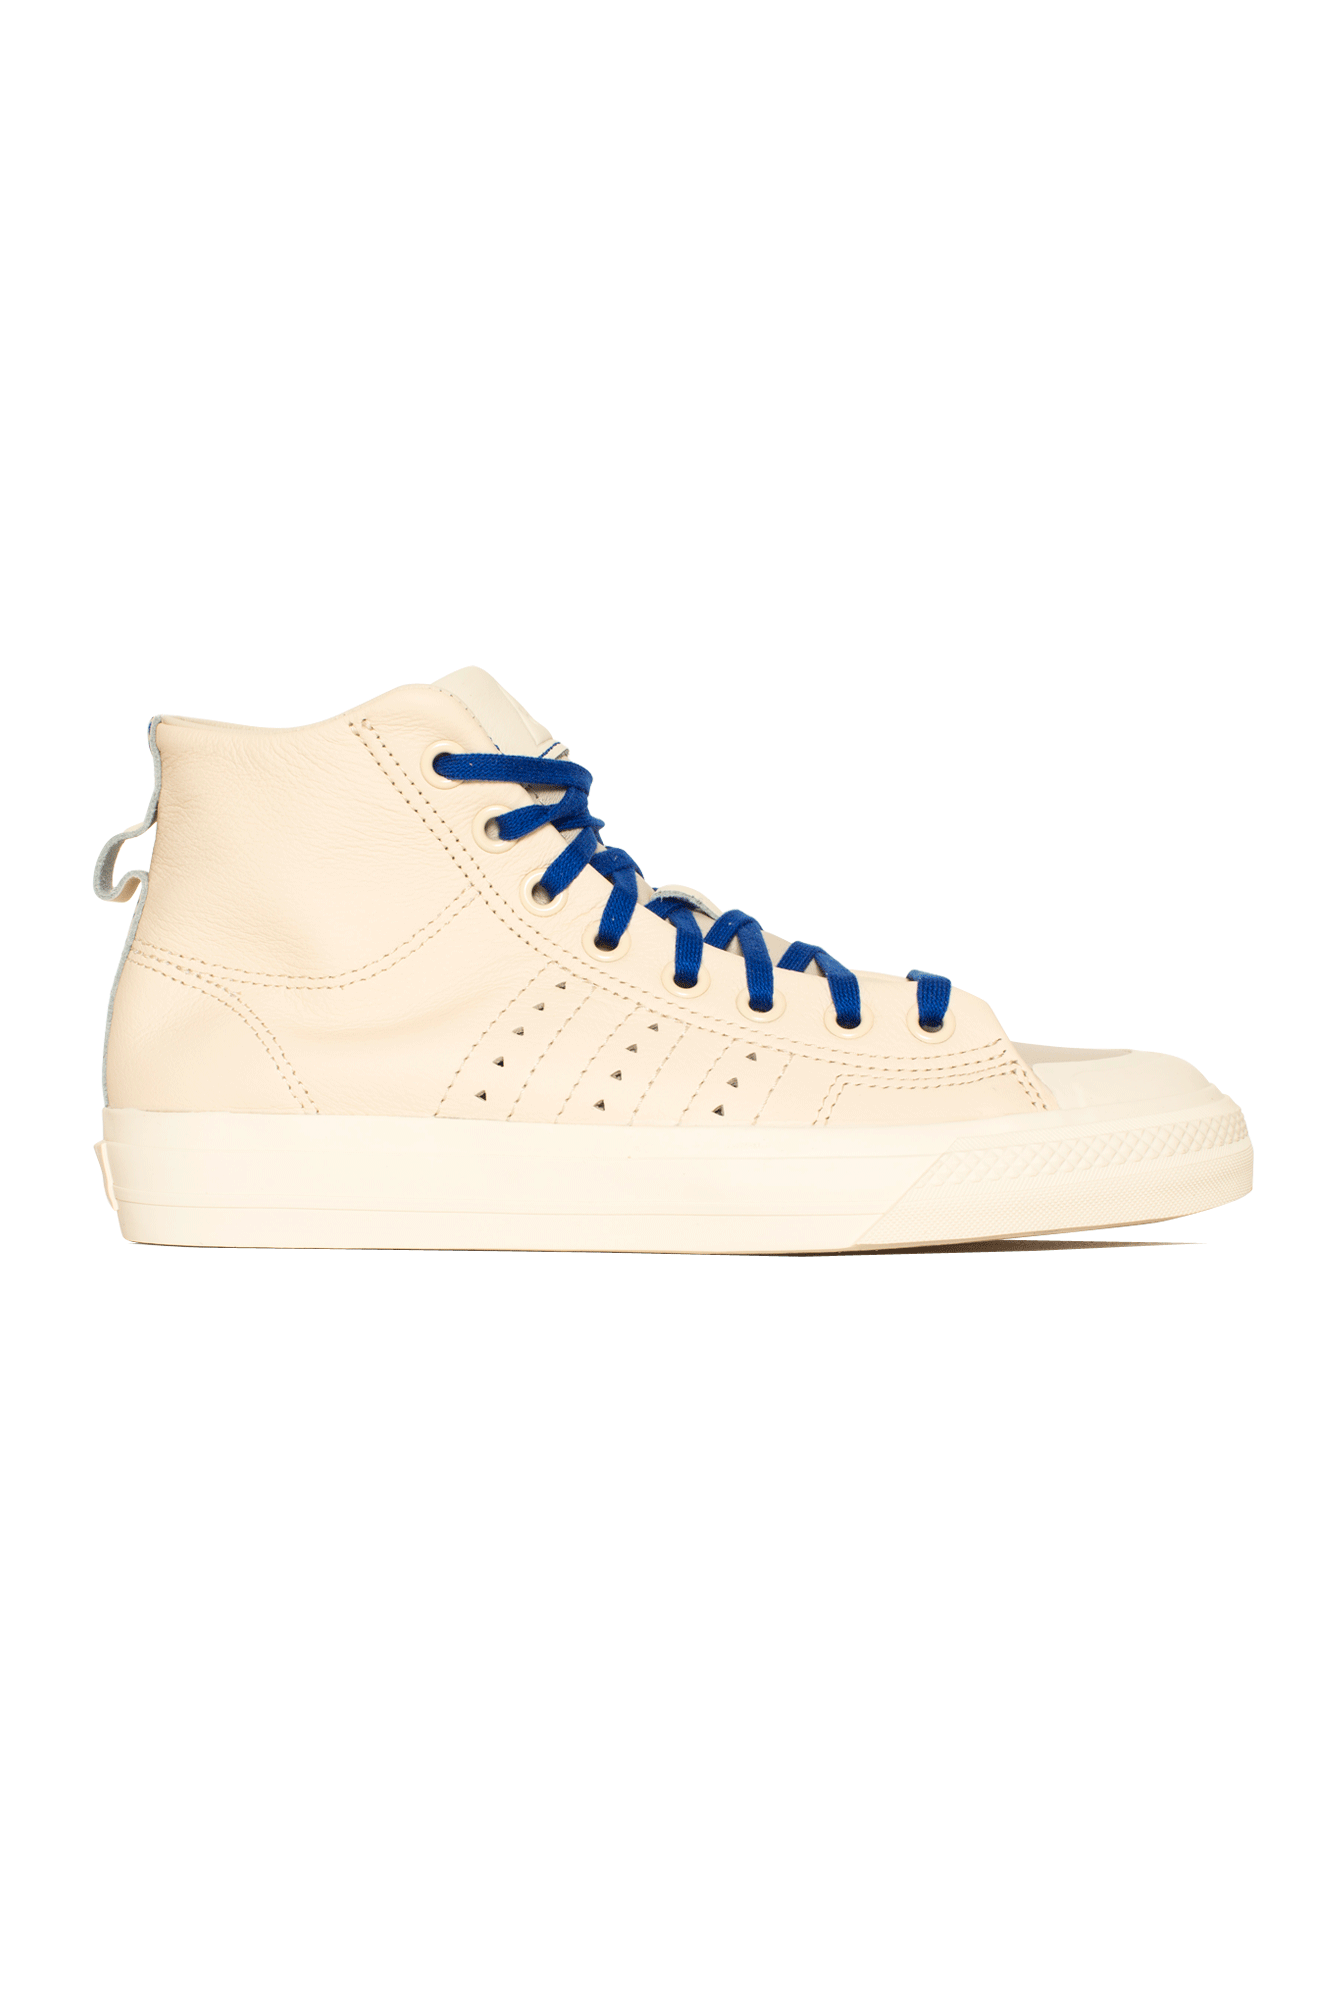 PW Nizza Hi RF White